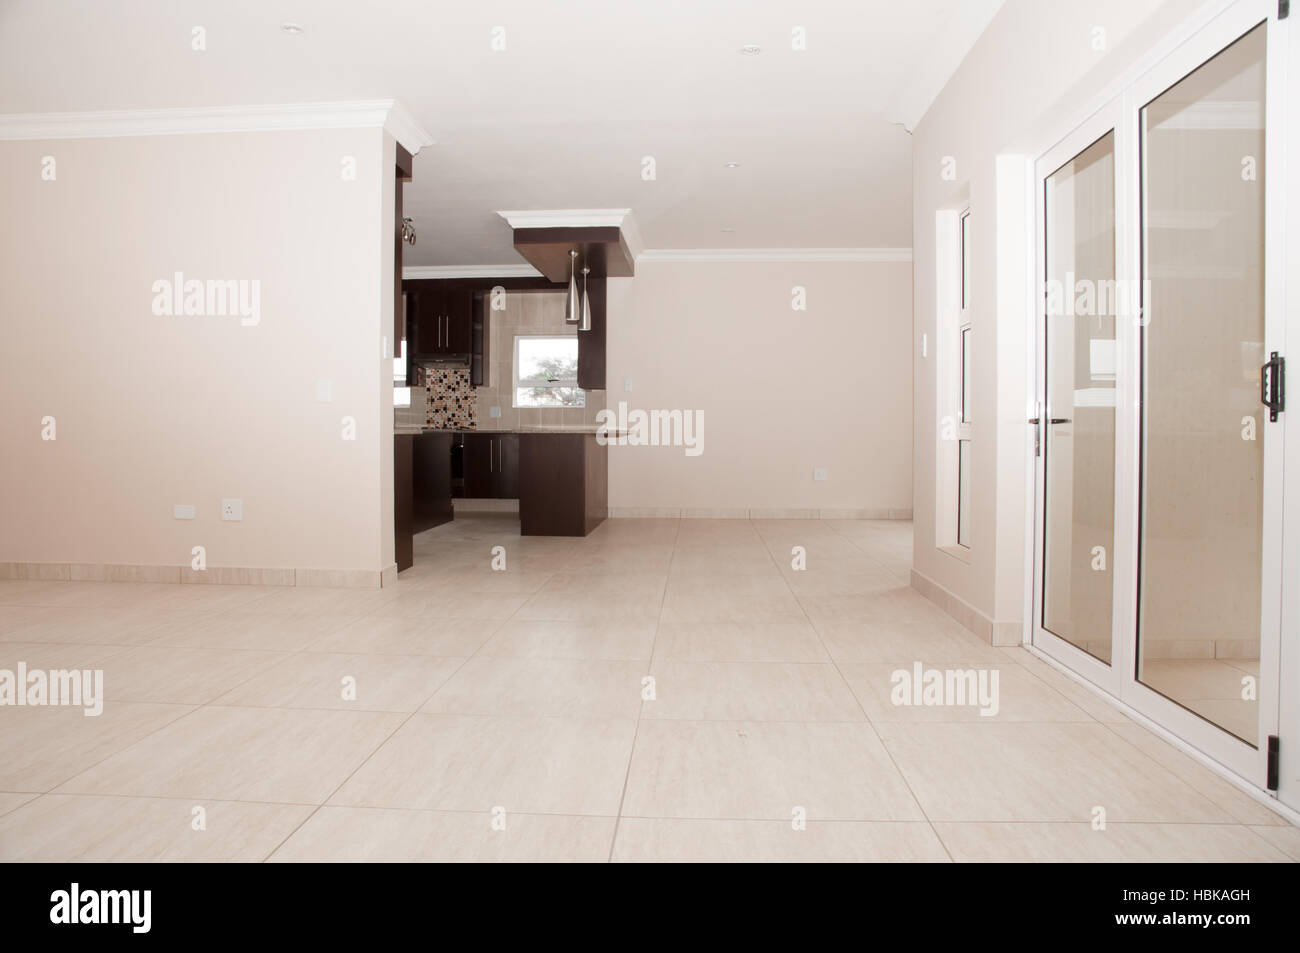 Open Plan Living Room and Kitchen - Stock Image